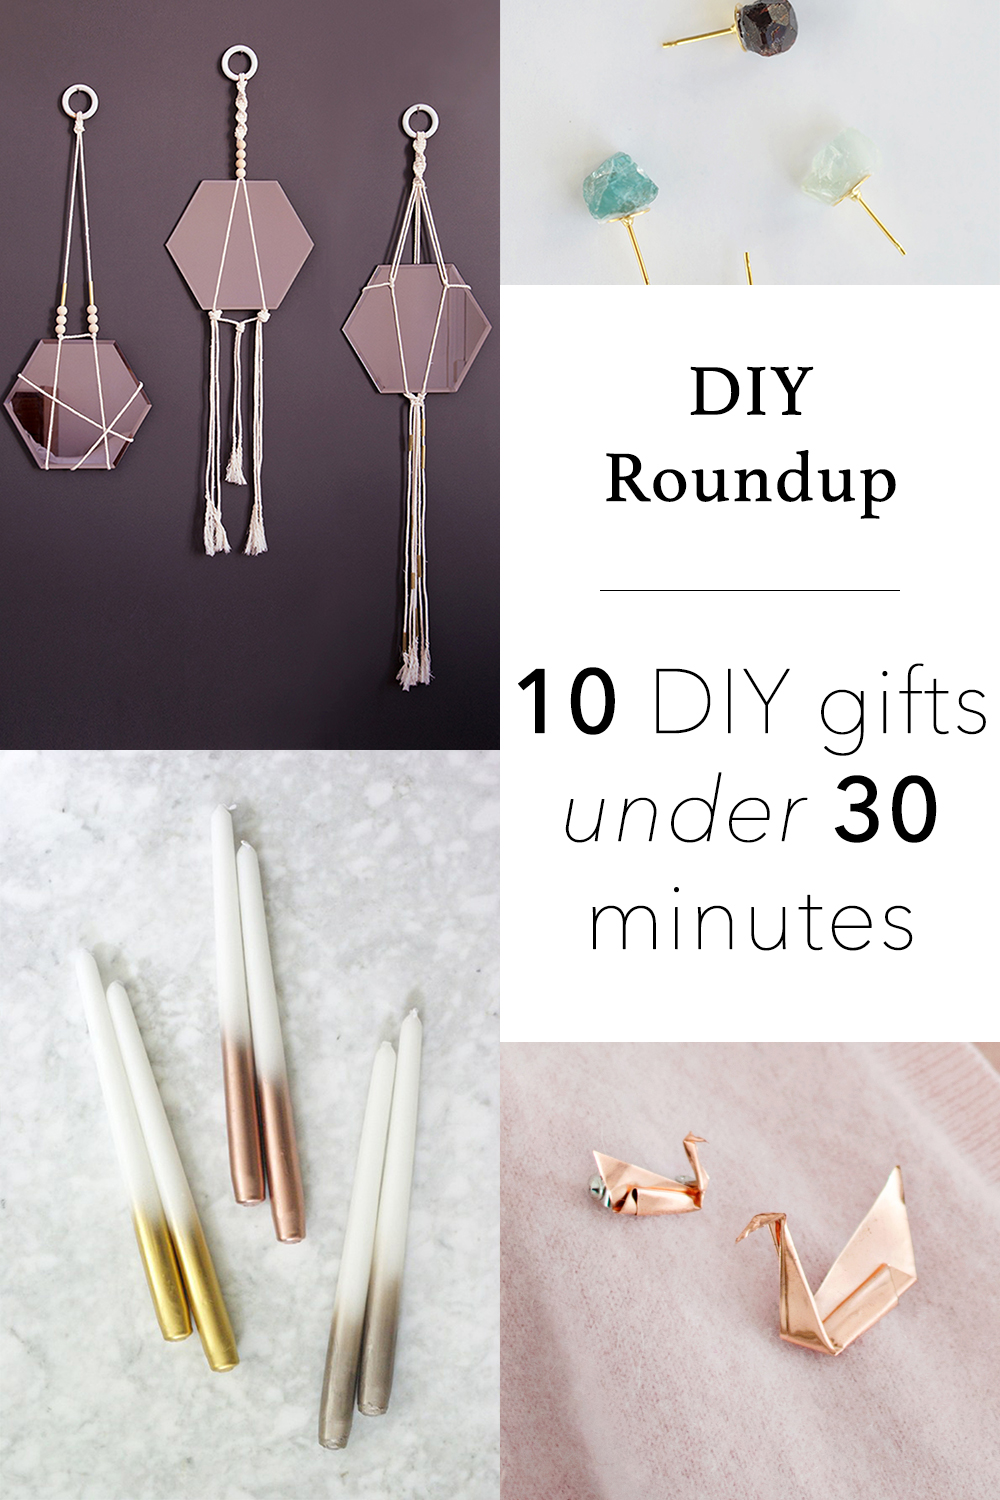 DIY ROUNDUP | 10 DIY Gifts Under 30 Minutes